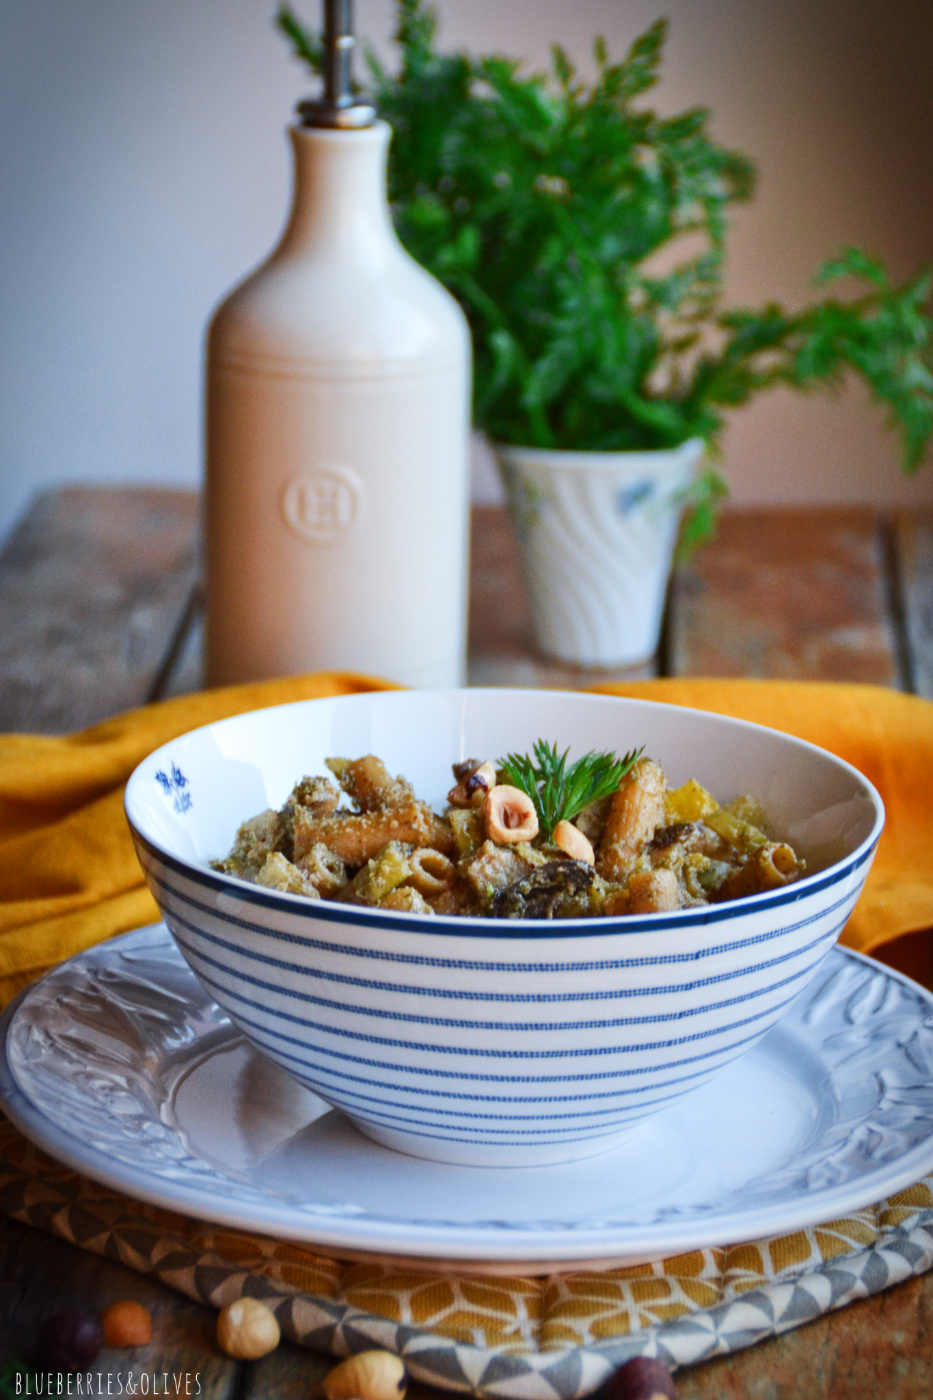 WHITE AND BLUE BOWL OF PASTA WITH FENNEL PESTO AND OLD WOODEN BACKGROUND, YELLOW TABLECLOTH, BOTTLE OF OLIVE OIL